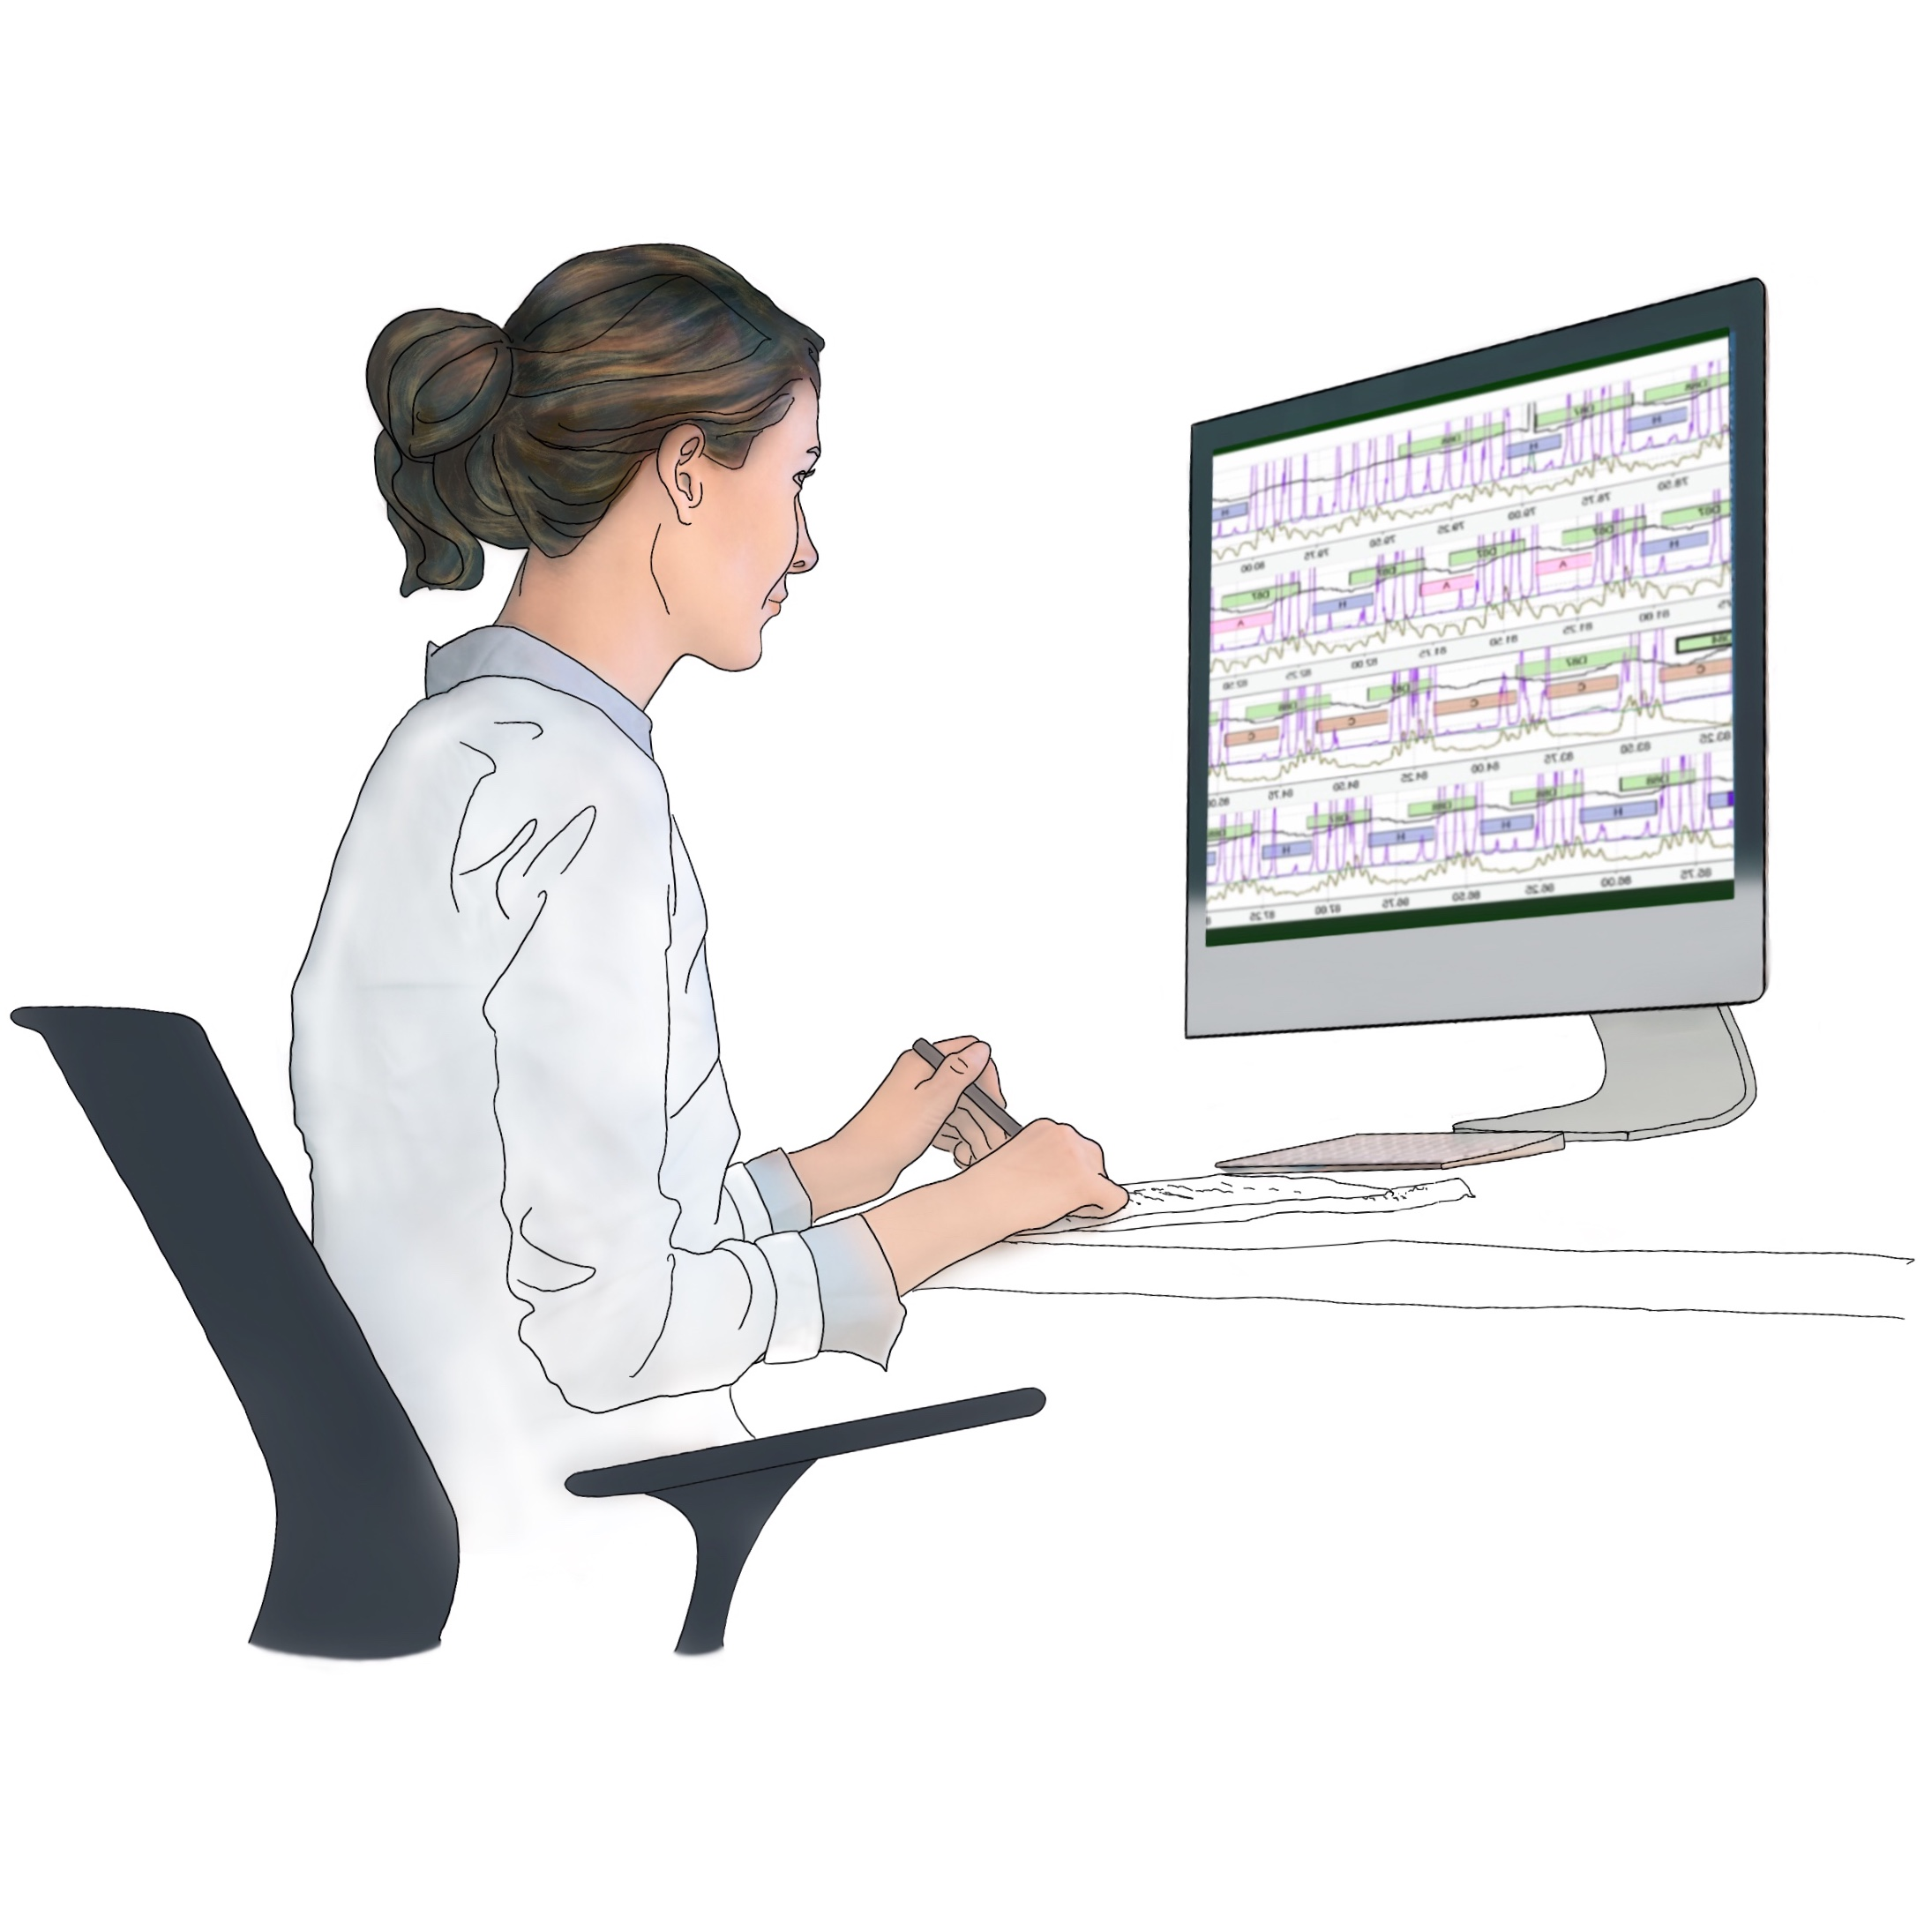 A drawing of a technician (RPSGT) at Snap Diagnostics analyzing sleep data from a home sleep apnea test